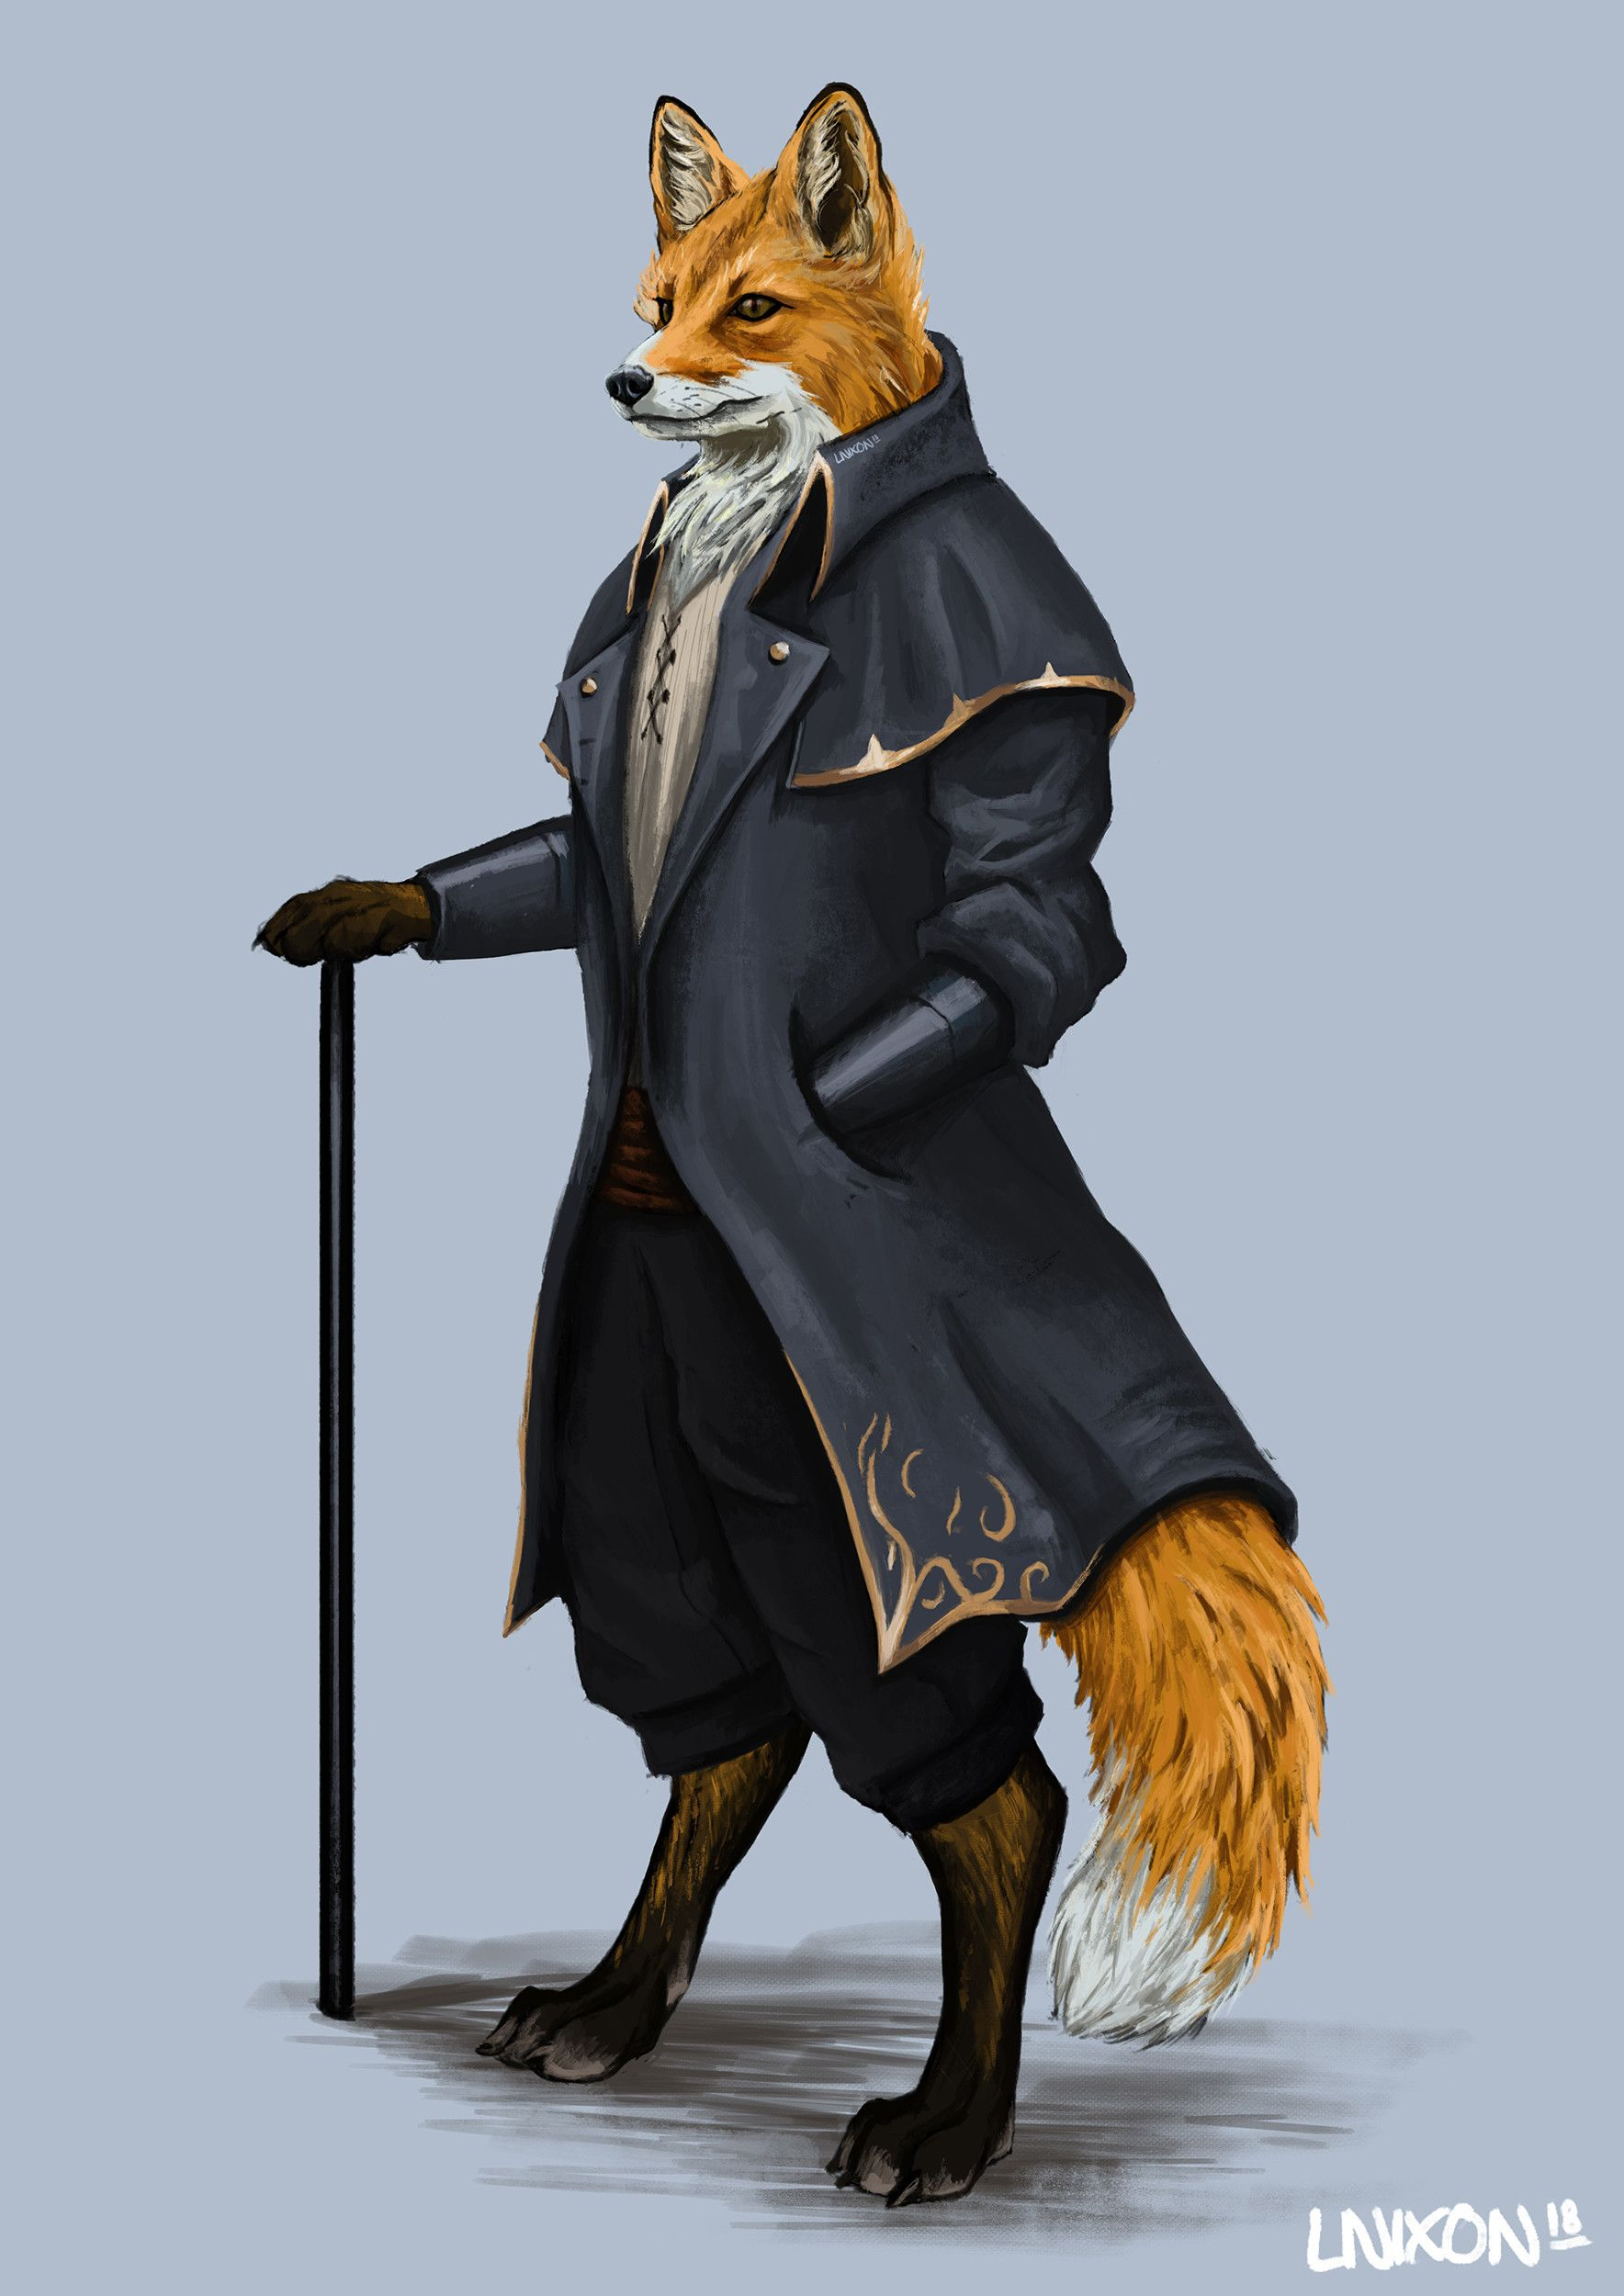 fox character design Movies is part of The Peanuts Movie Character Design Fox Family - Character design for a personal illustration project I'm doing based off a snippet from Lord of the Rings 🦊